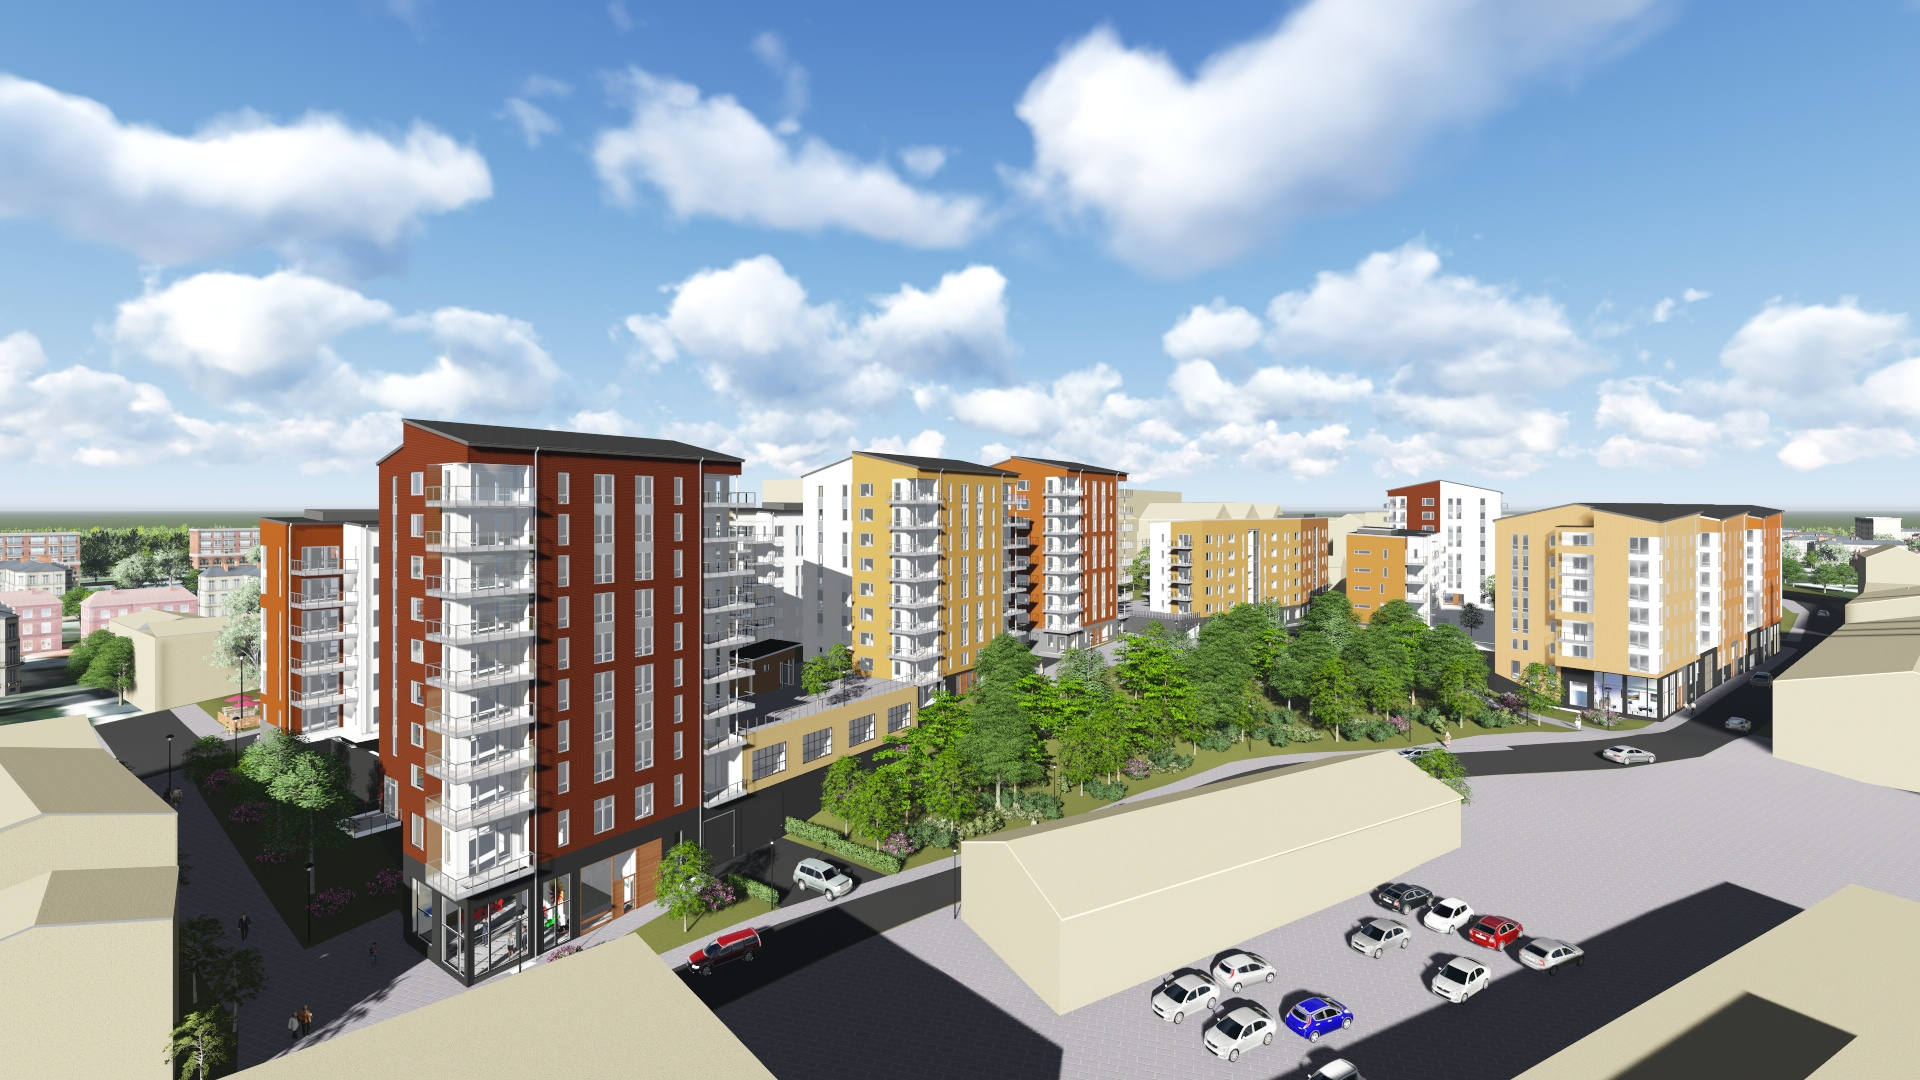 Skanska partners with Lundbergs to build 392 rental apartments in Norrköping, Sweden